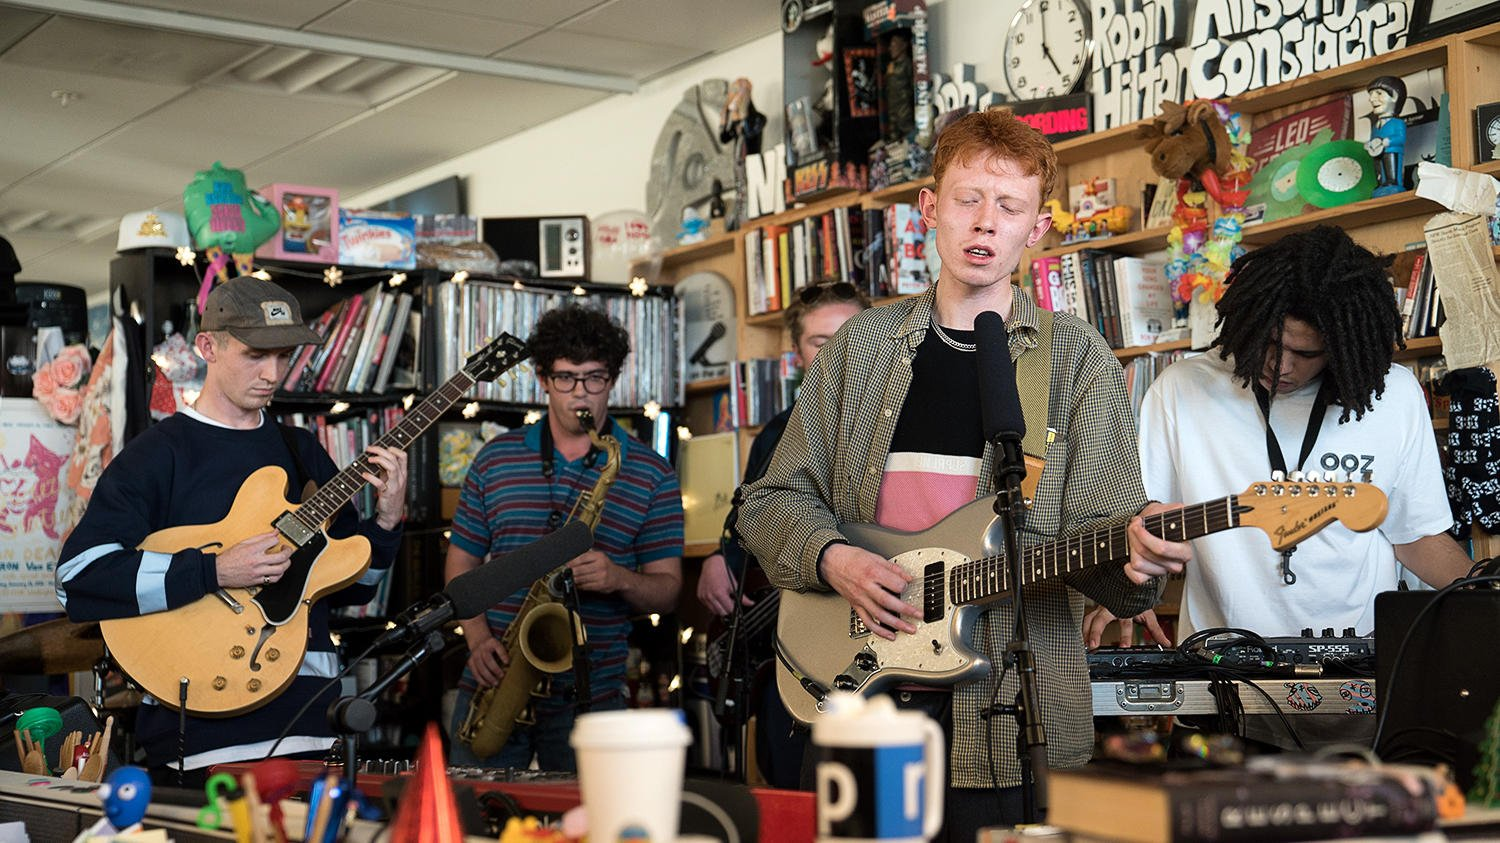 Watch King Krule's Tiny Desk Concert. https://t.co/dmLhbzIrAV https://t.co/YVWXTbvqGa